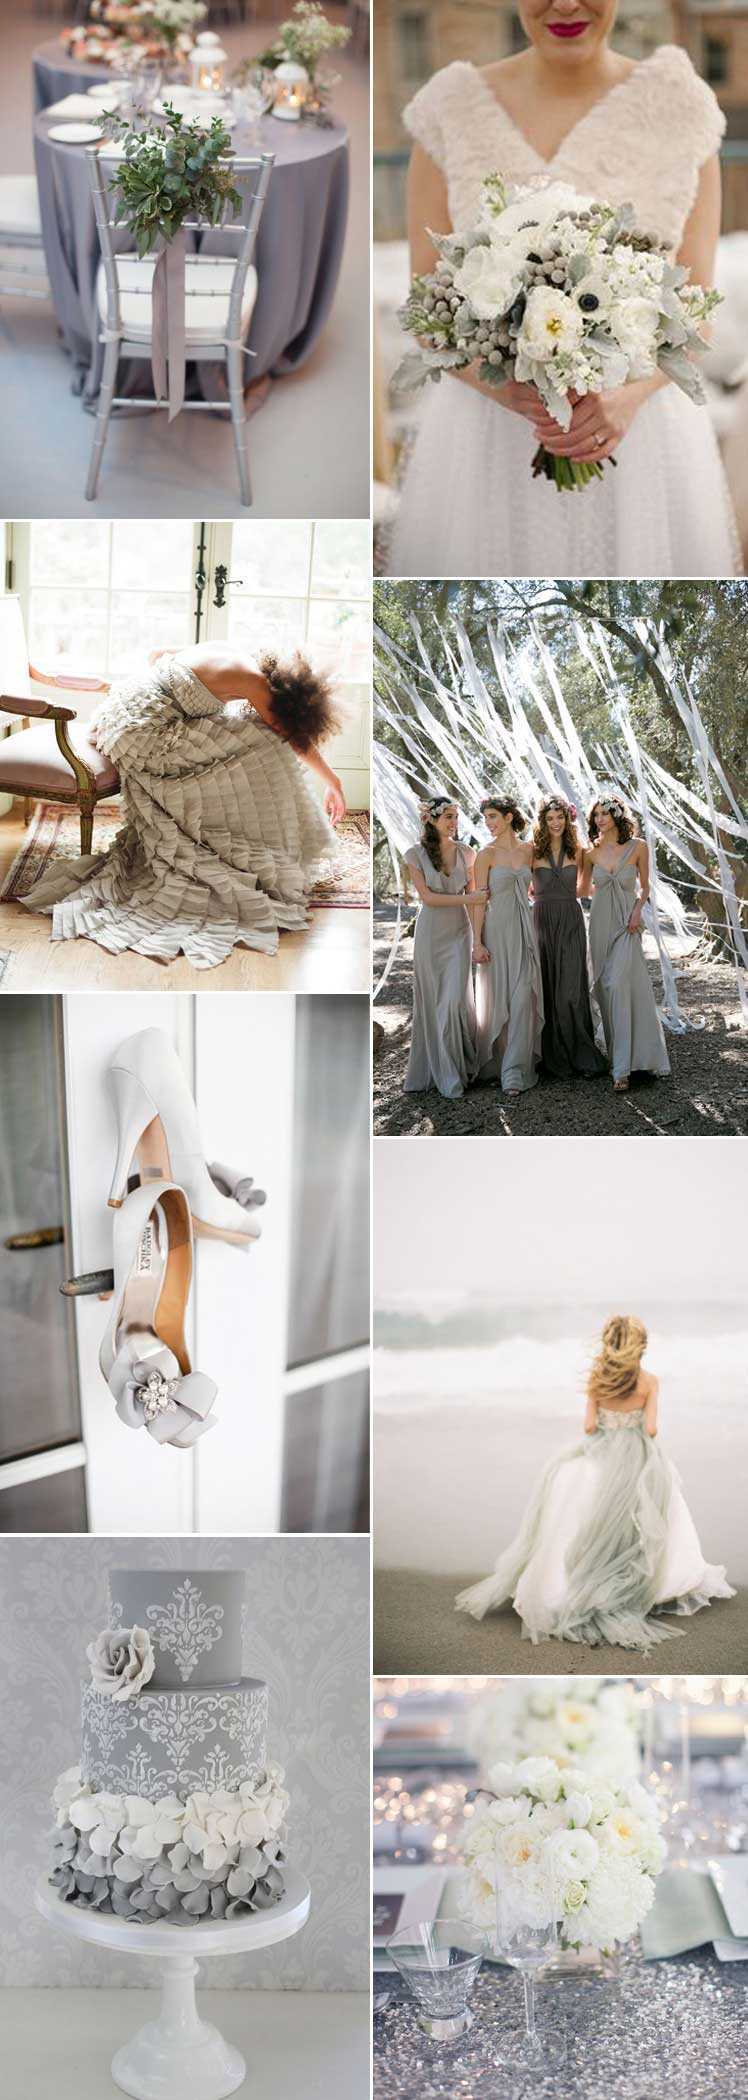 Mood board for a grey wedding colour scheme